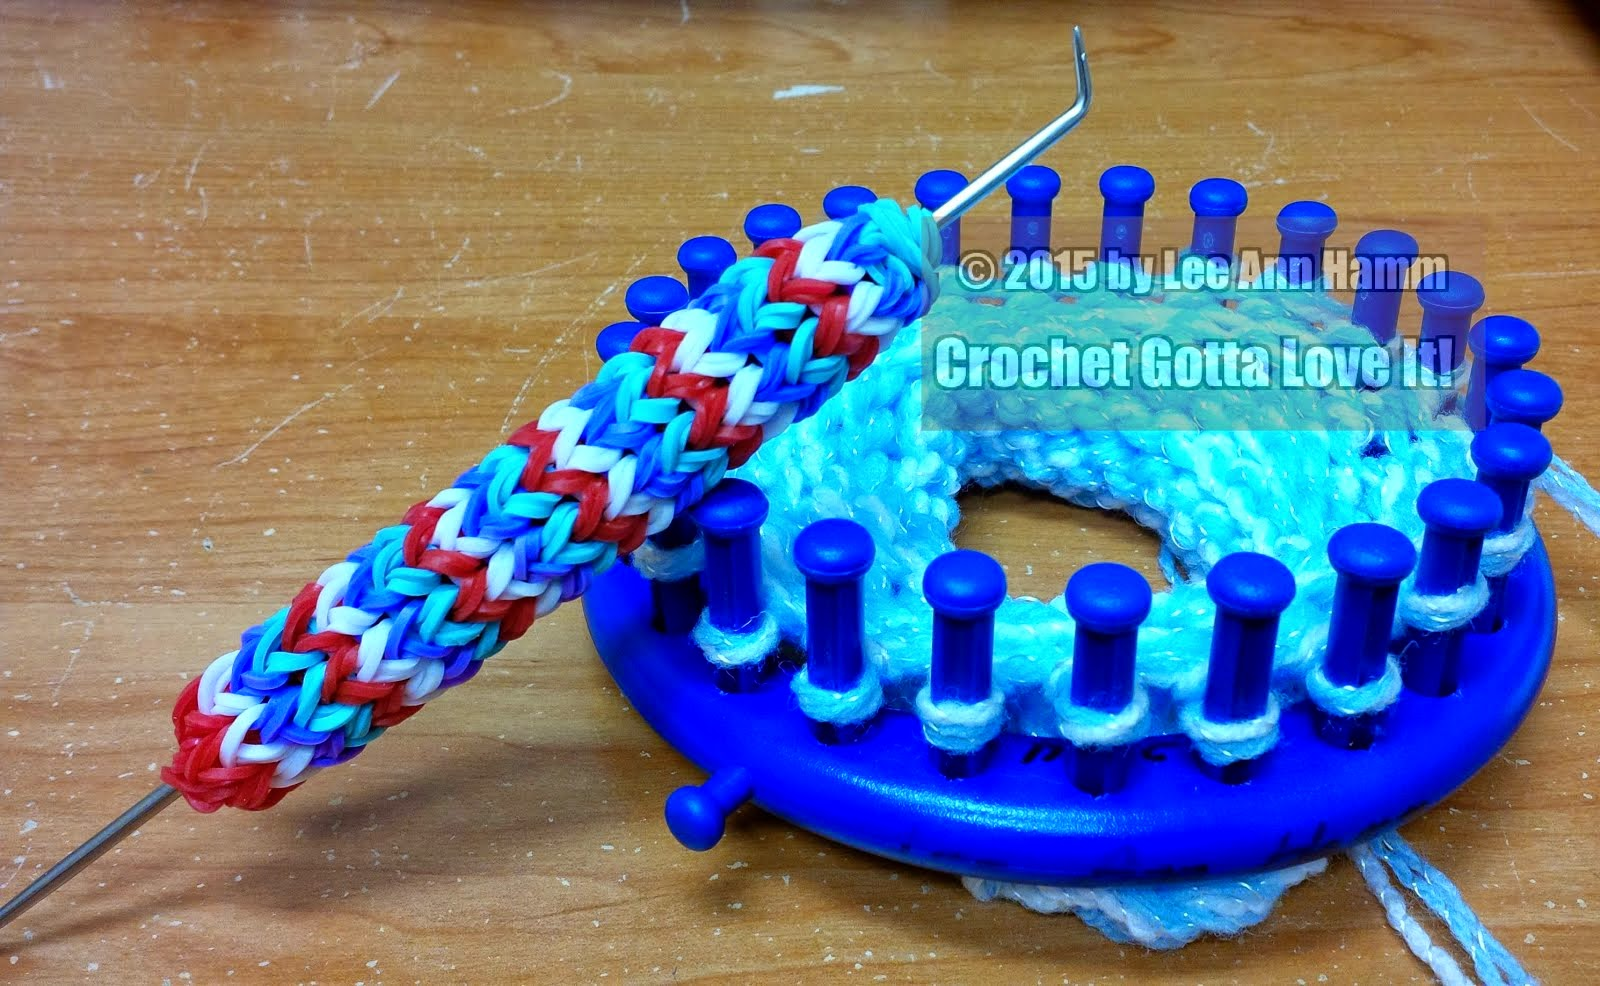 Loom Knitting With Two Colors : Crochet gotta love it! blog: preemie hat donation 208 hats